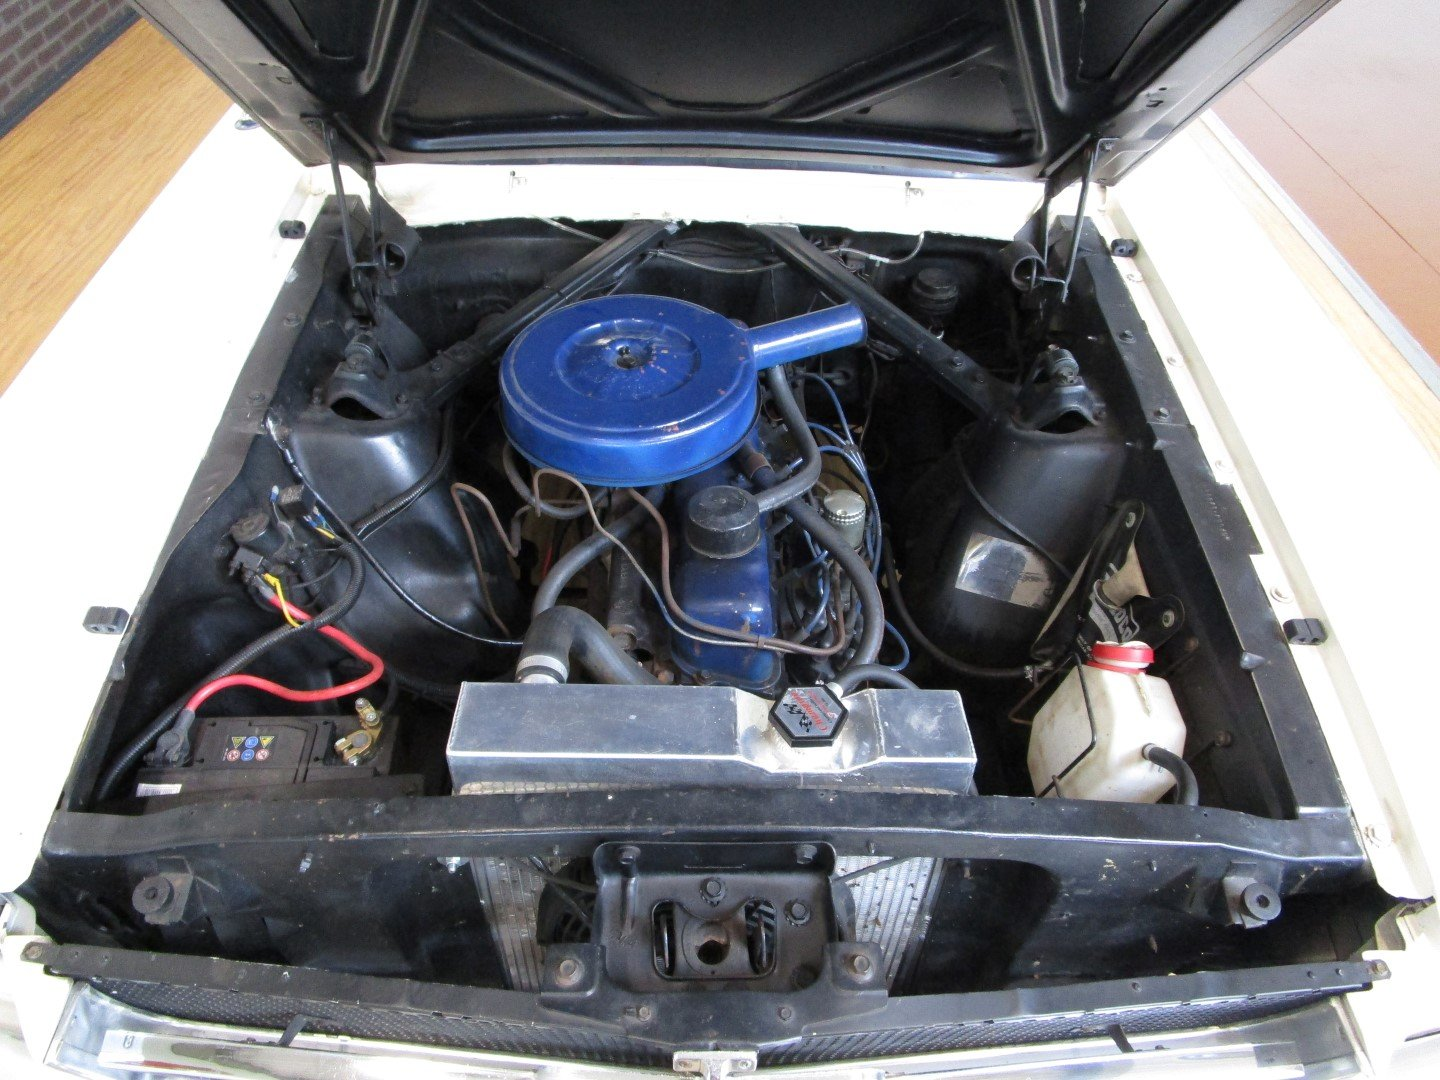 Ford Mustang 200CU Automatic Cabrio Early model 1964 1/2 For Sale (picture 6 of 6)